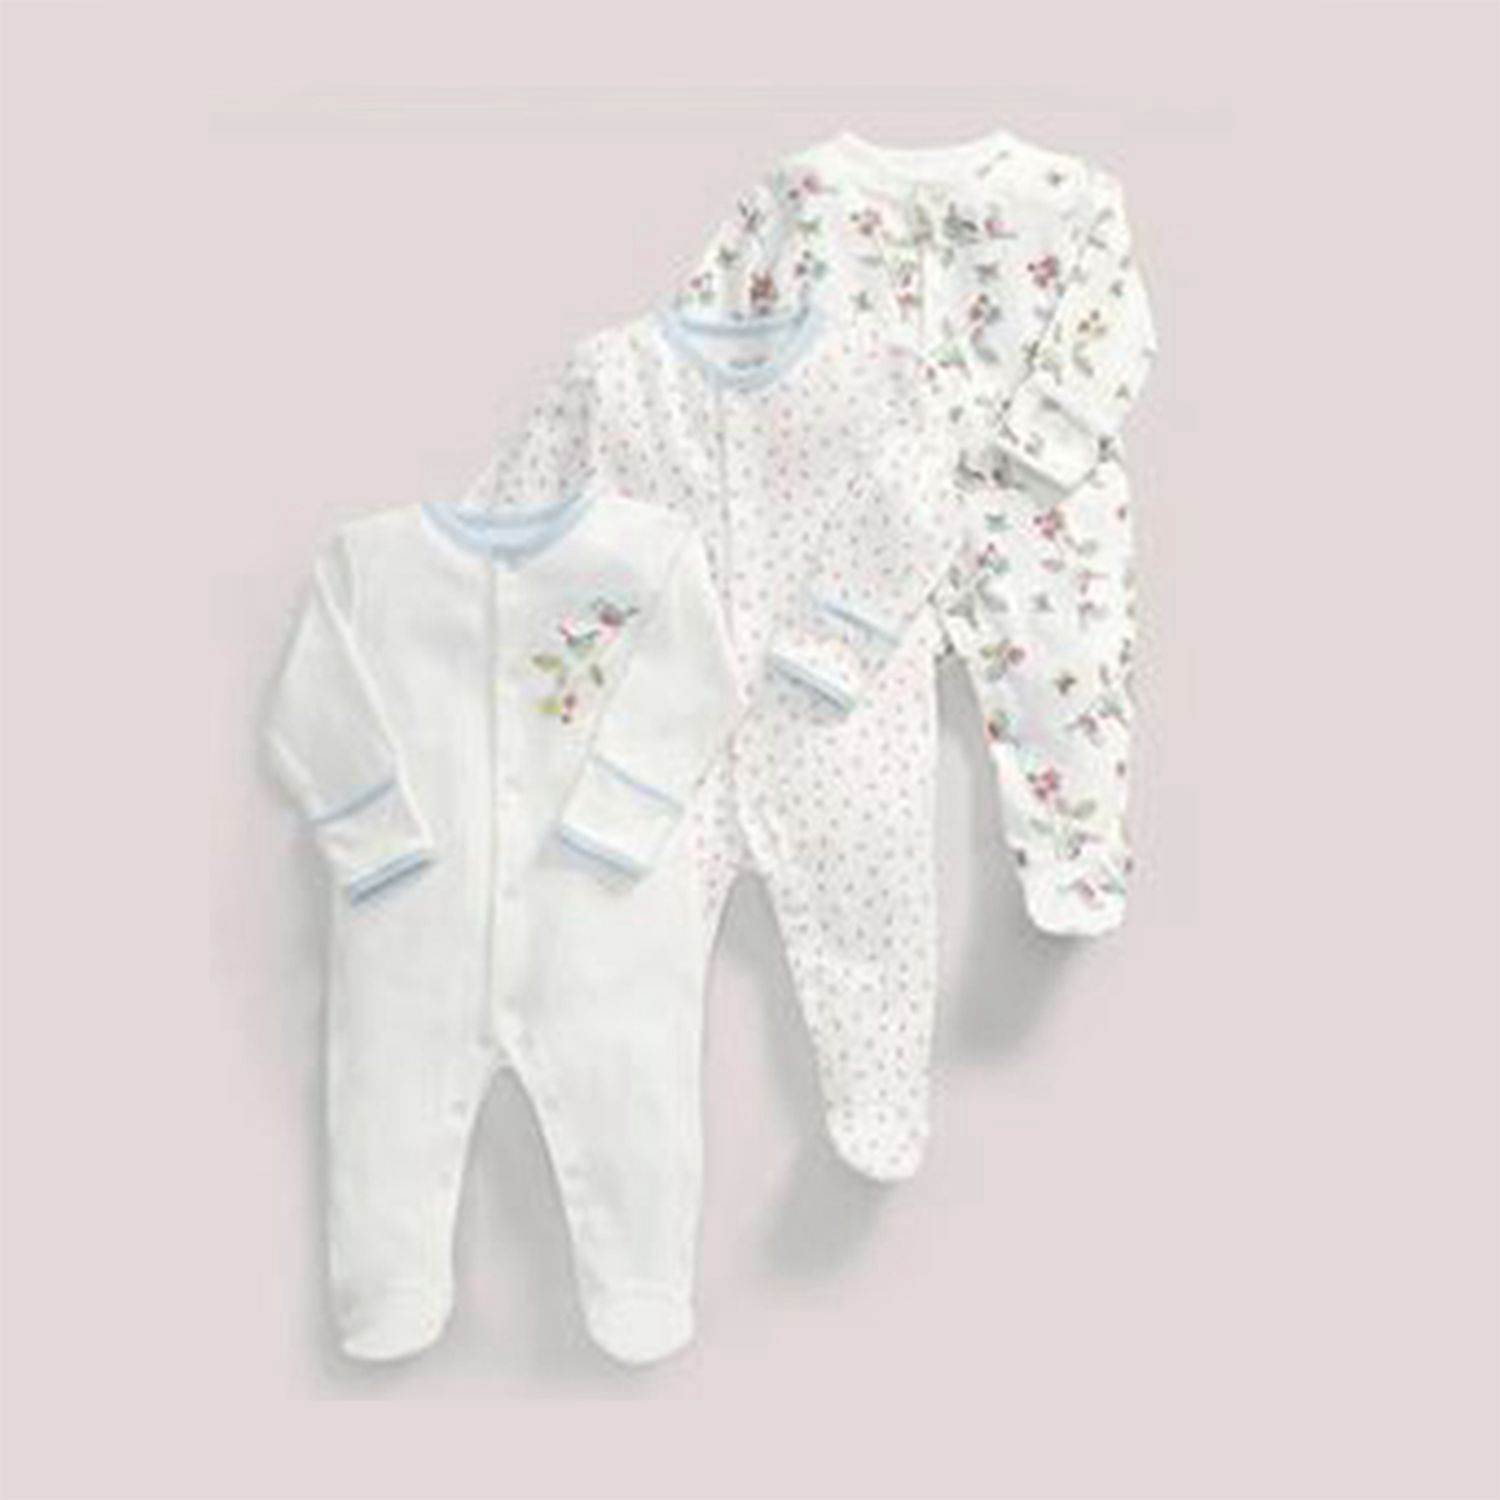 Baby Clothing Spring and autumn white color cotton long-sleeved baby onesies haber romper 3 piece set 50cm(White flower)